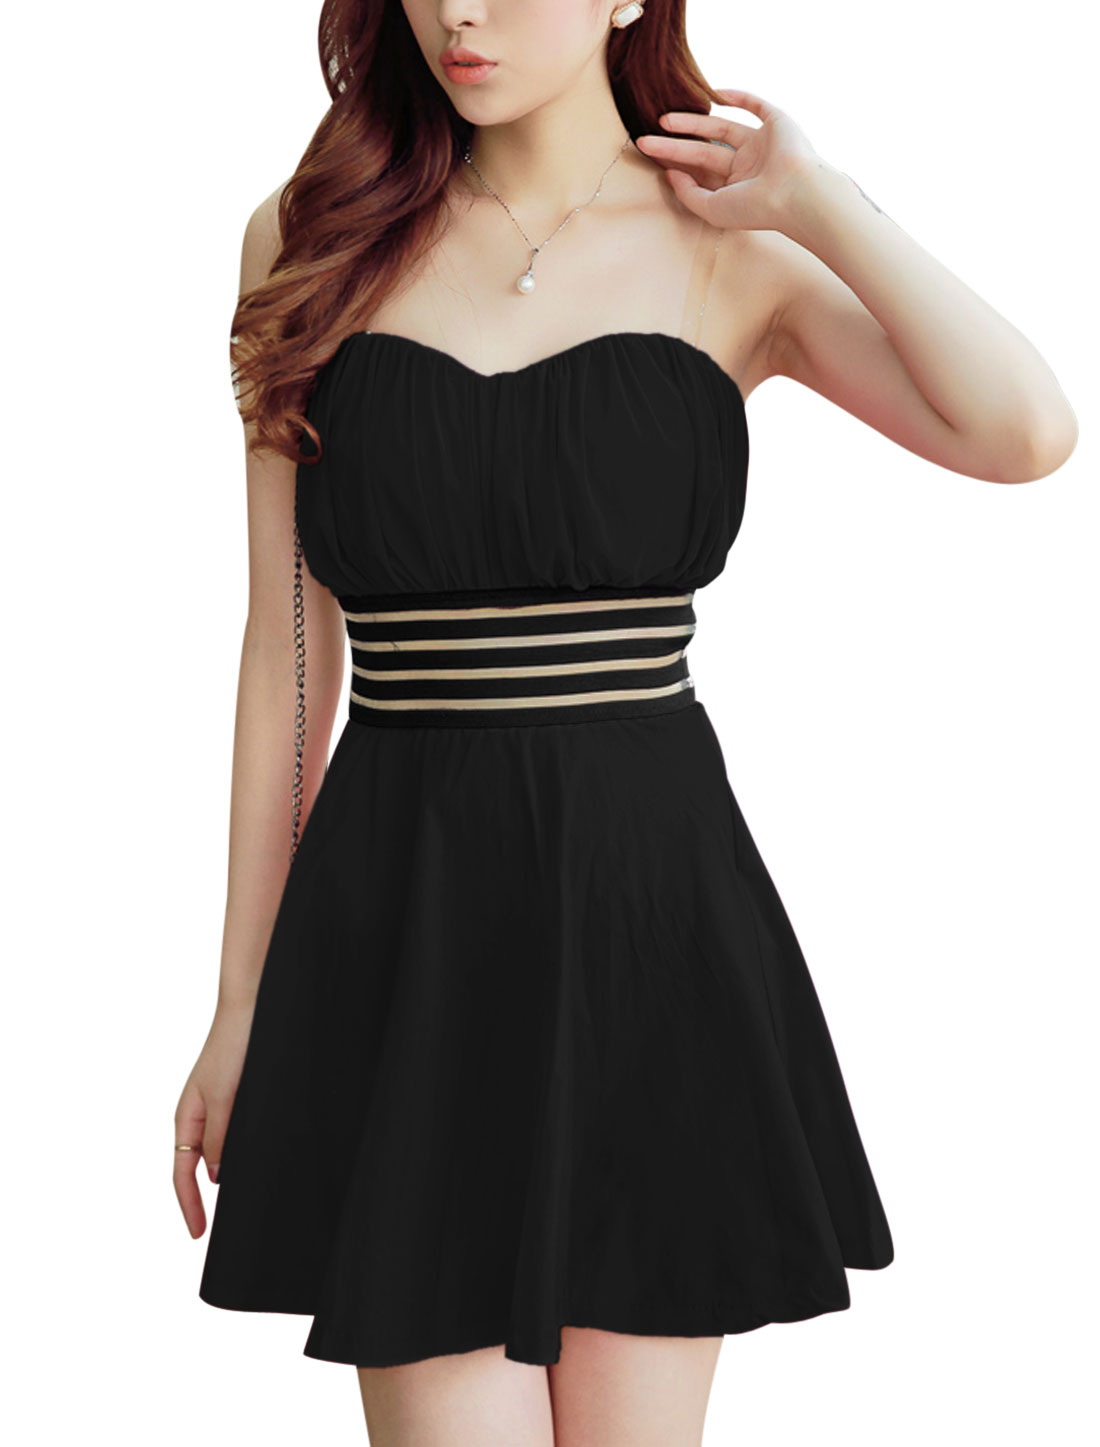 Ladies Black Pullover Elastic Waistband Padded Bust Unlined Corset Dress S